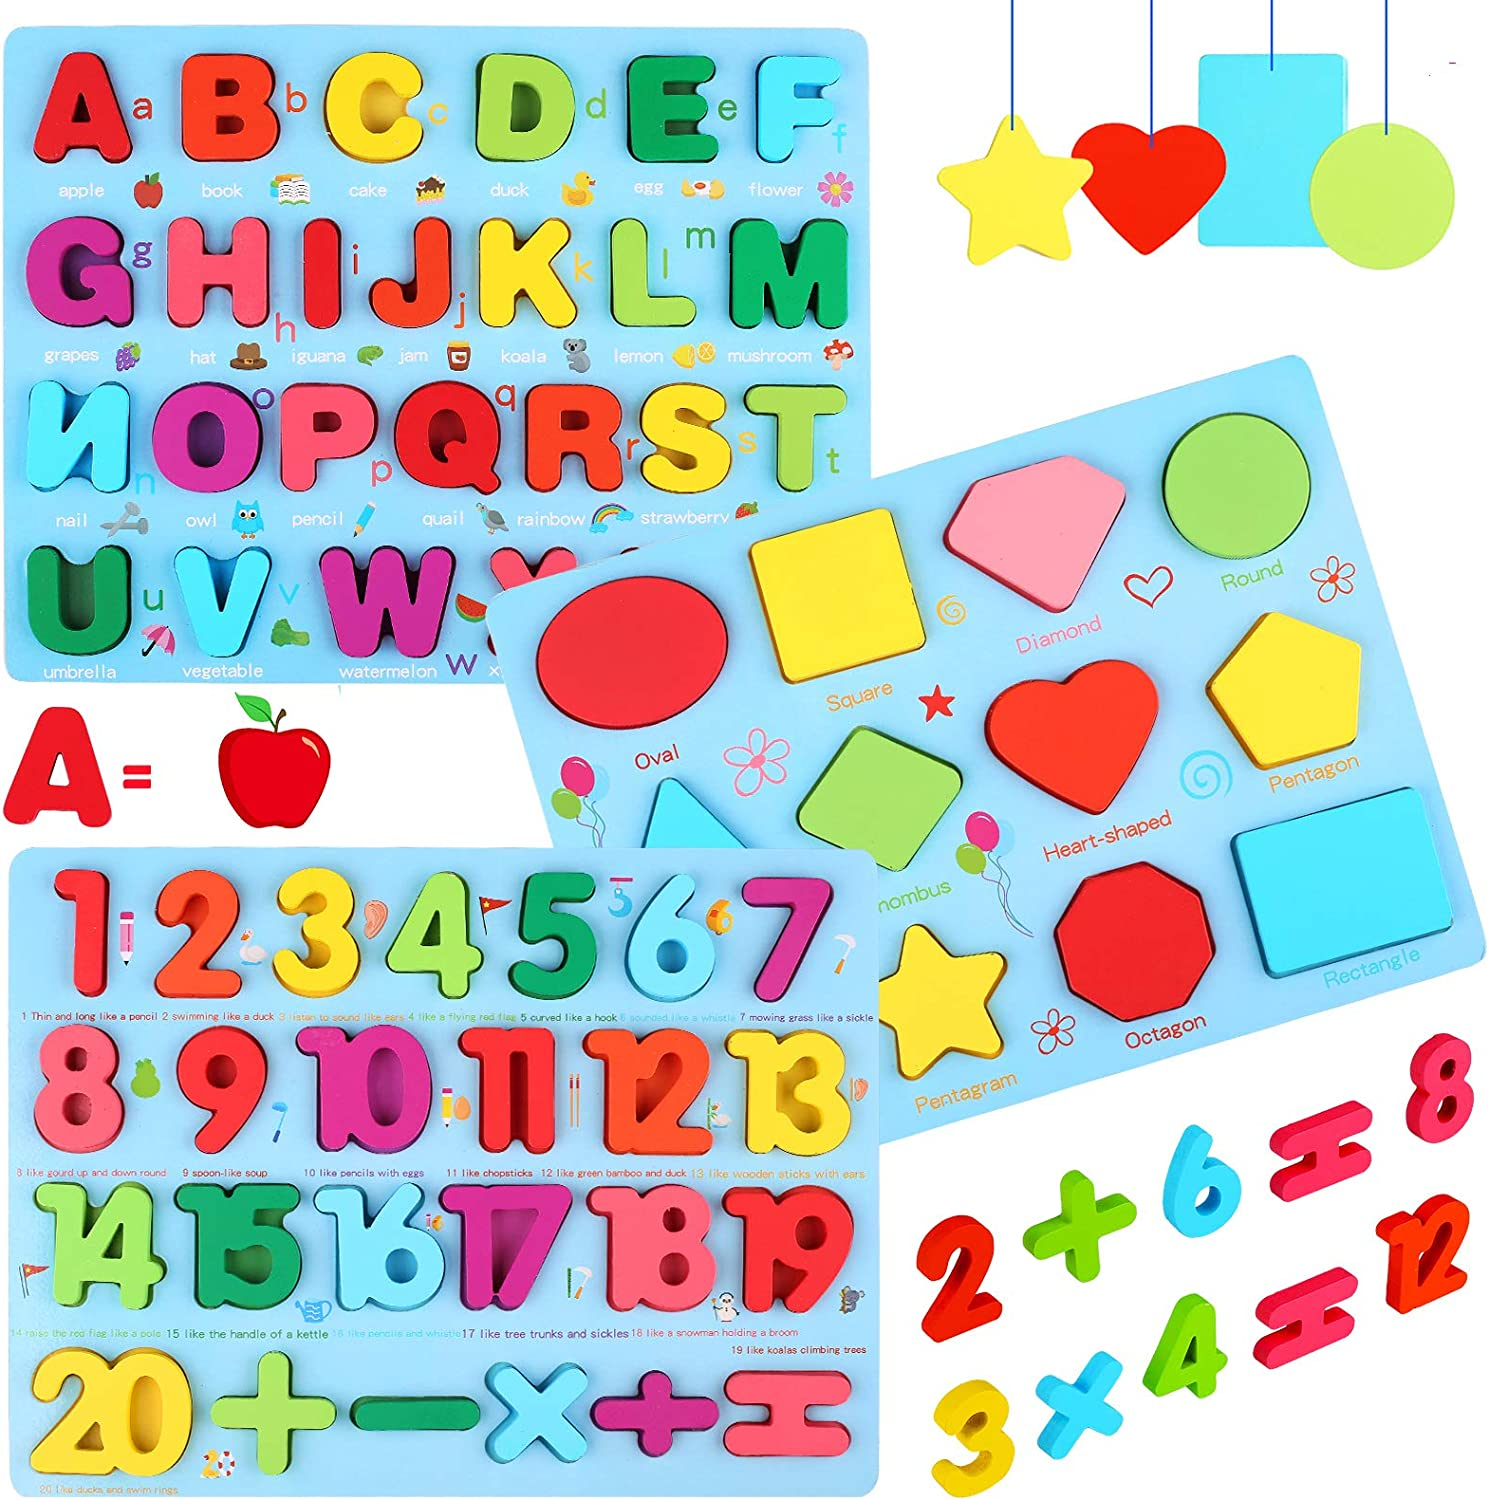 Wooden Puzzles for Toddlers, Kesletney Wooden Numbers Alphabet and Shape Puzzles Set Toddler Wood Learning Toys Preschool Education Puzzle Board Gifts for Kids Boys Girls Ages 3 + (Set of 3): Toys & Games